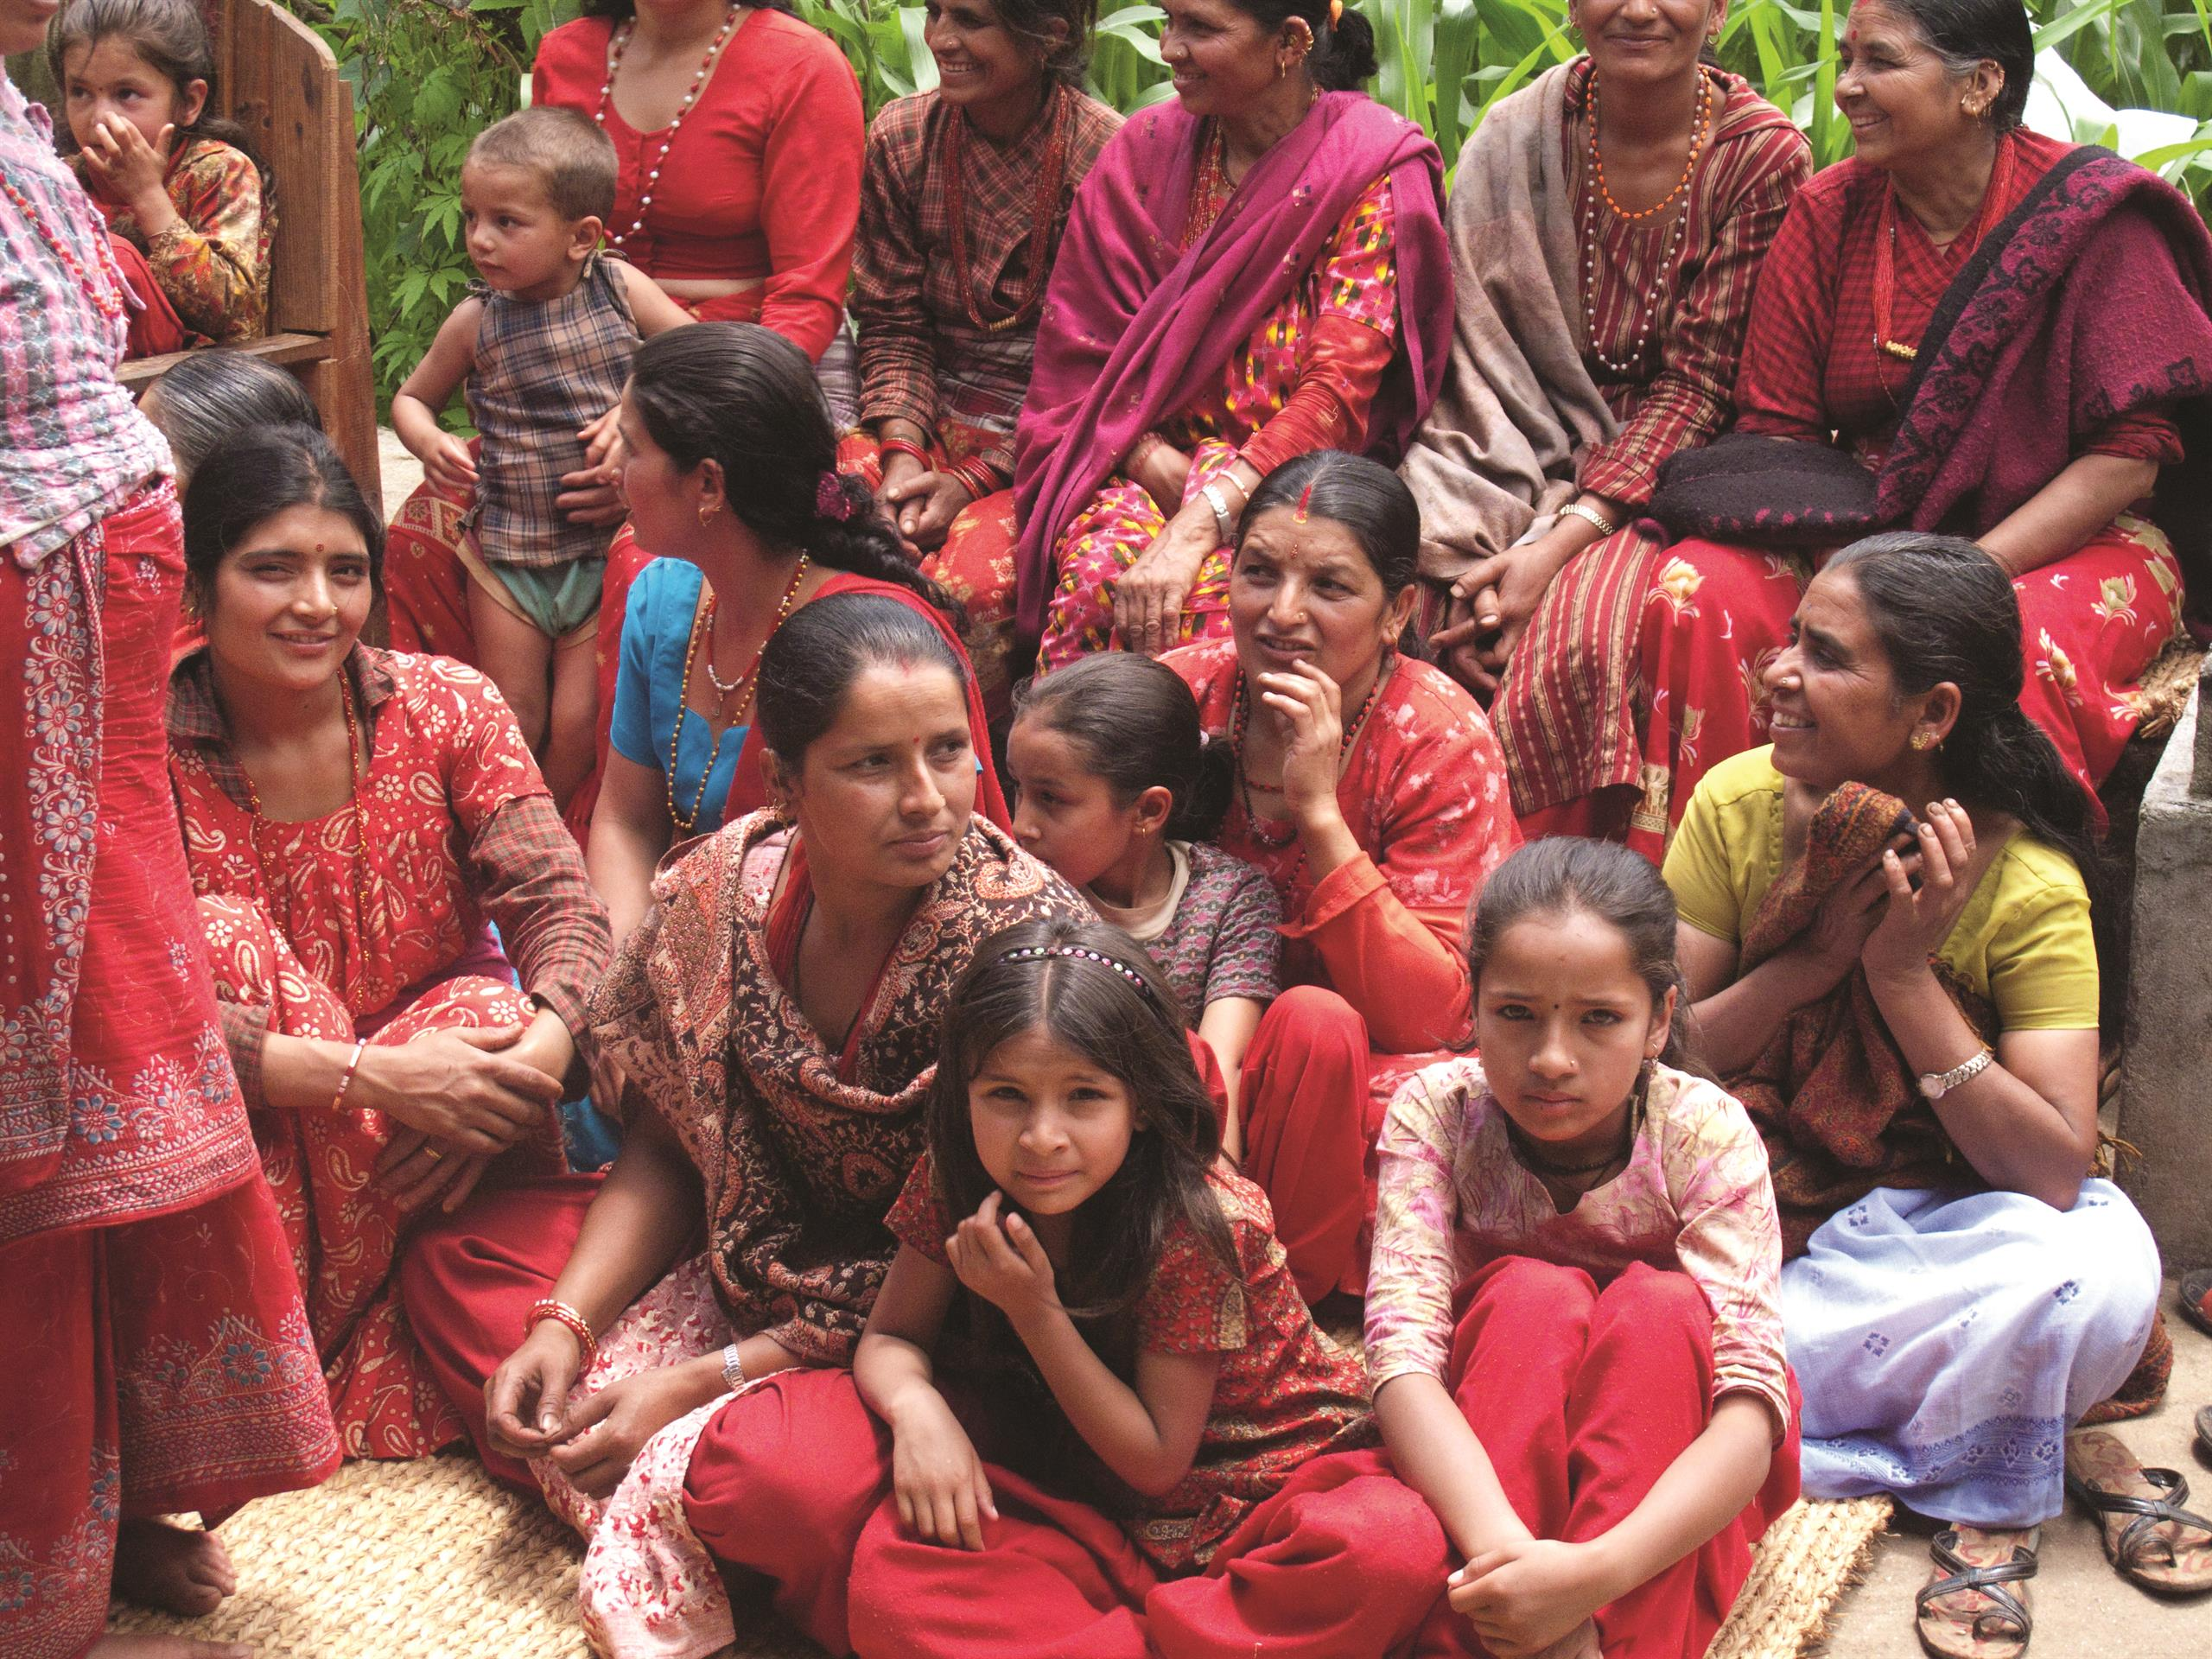 image of Nepalese women and girls seated at gathering